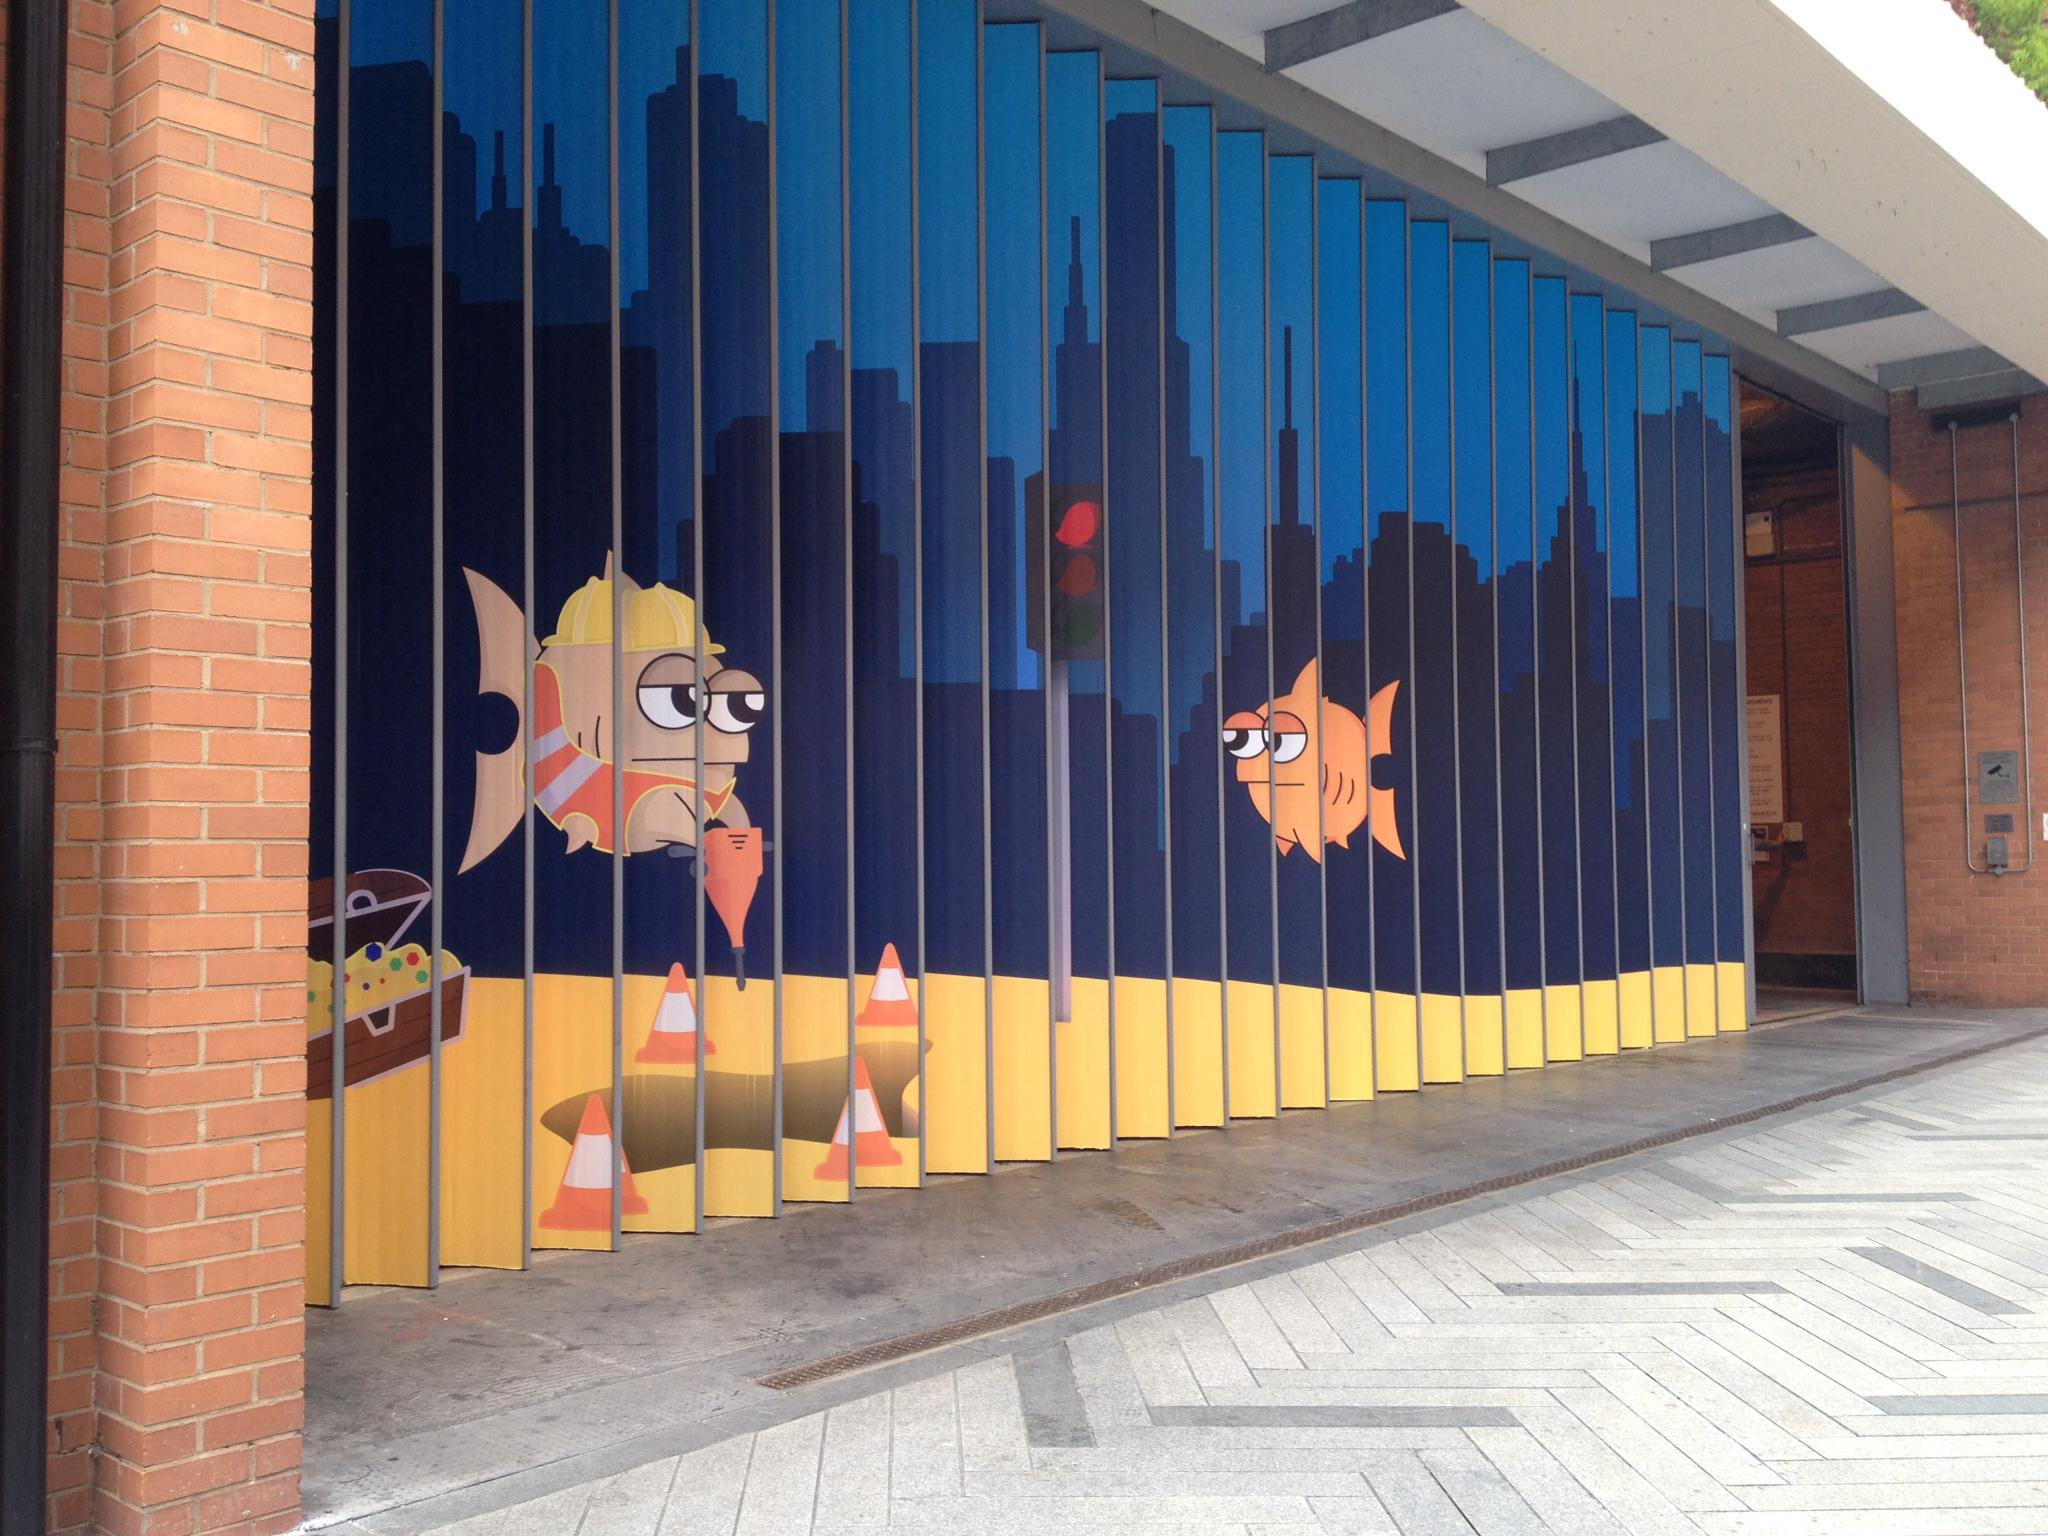 Have you seen the amazing #FishCity by #MarcusAlbon that is currently located opposite @BillsRestaurant @Highcross http://t.co/annaEaiql4